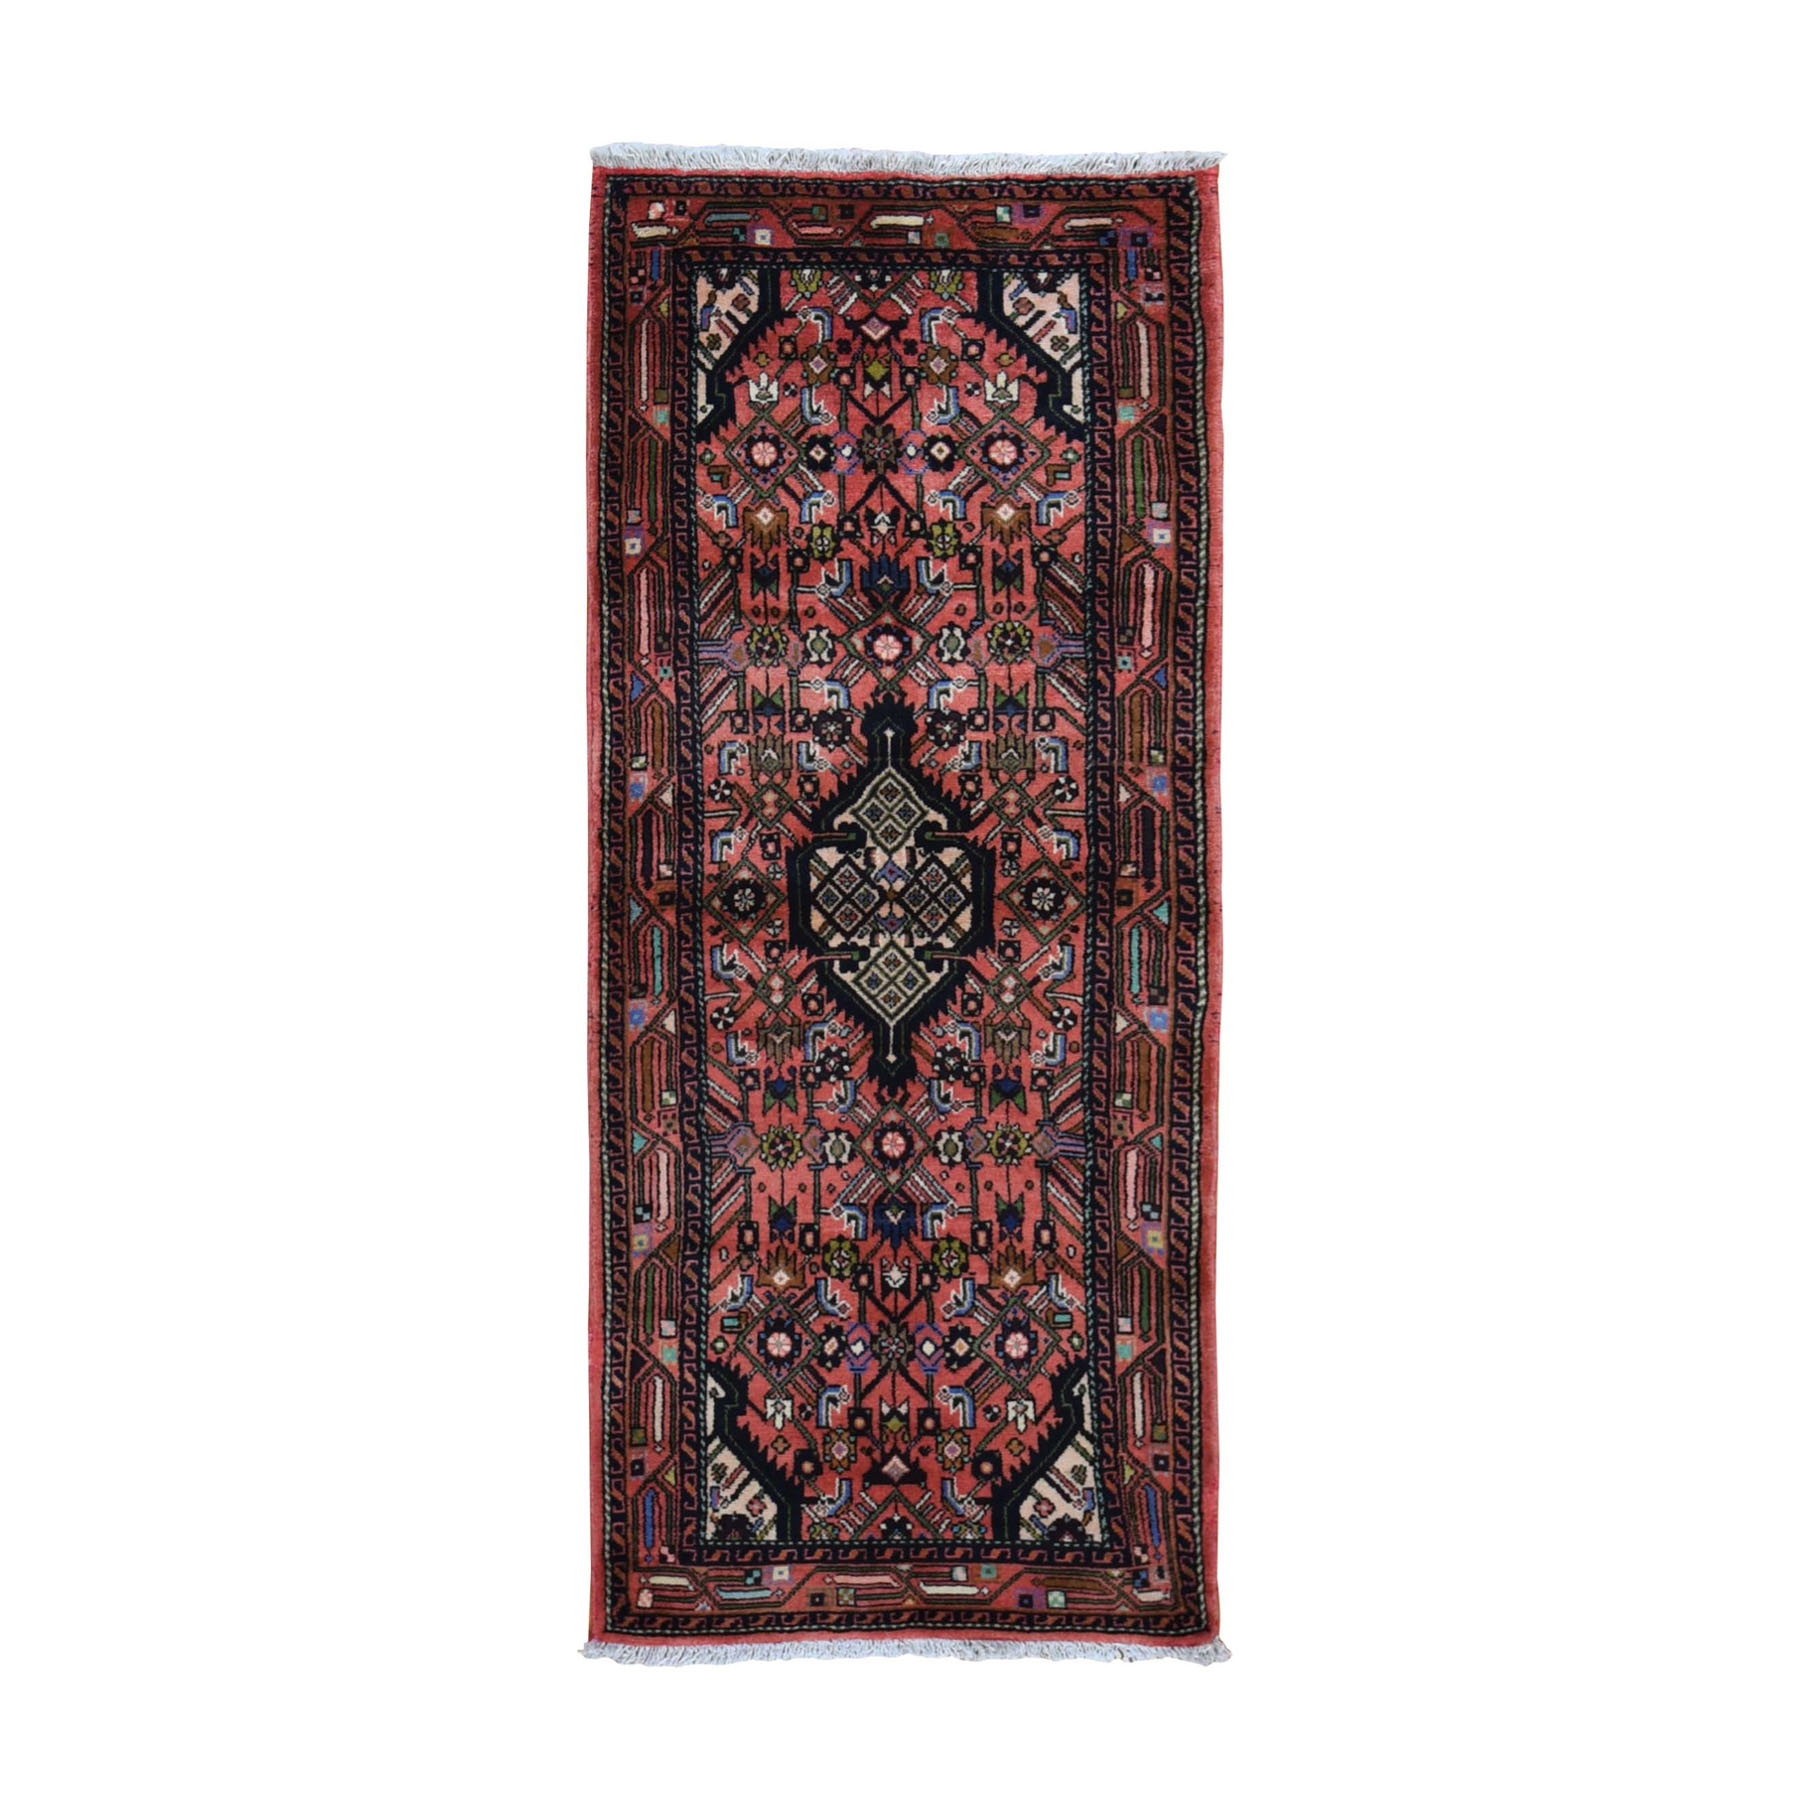 "2'7""x6'2"" Red New Persian Hamadan Pure Wool Hand Knotted Short Runner Tribal Oriental Rug"